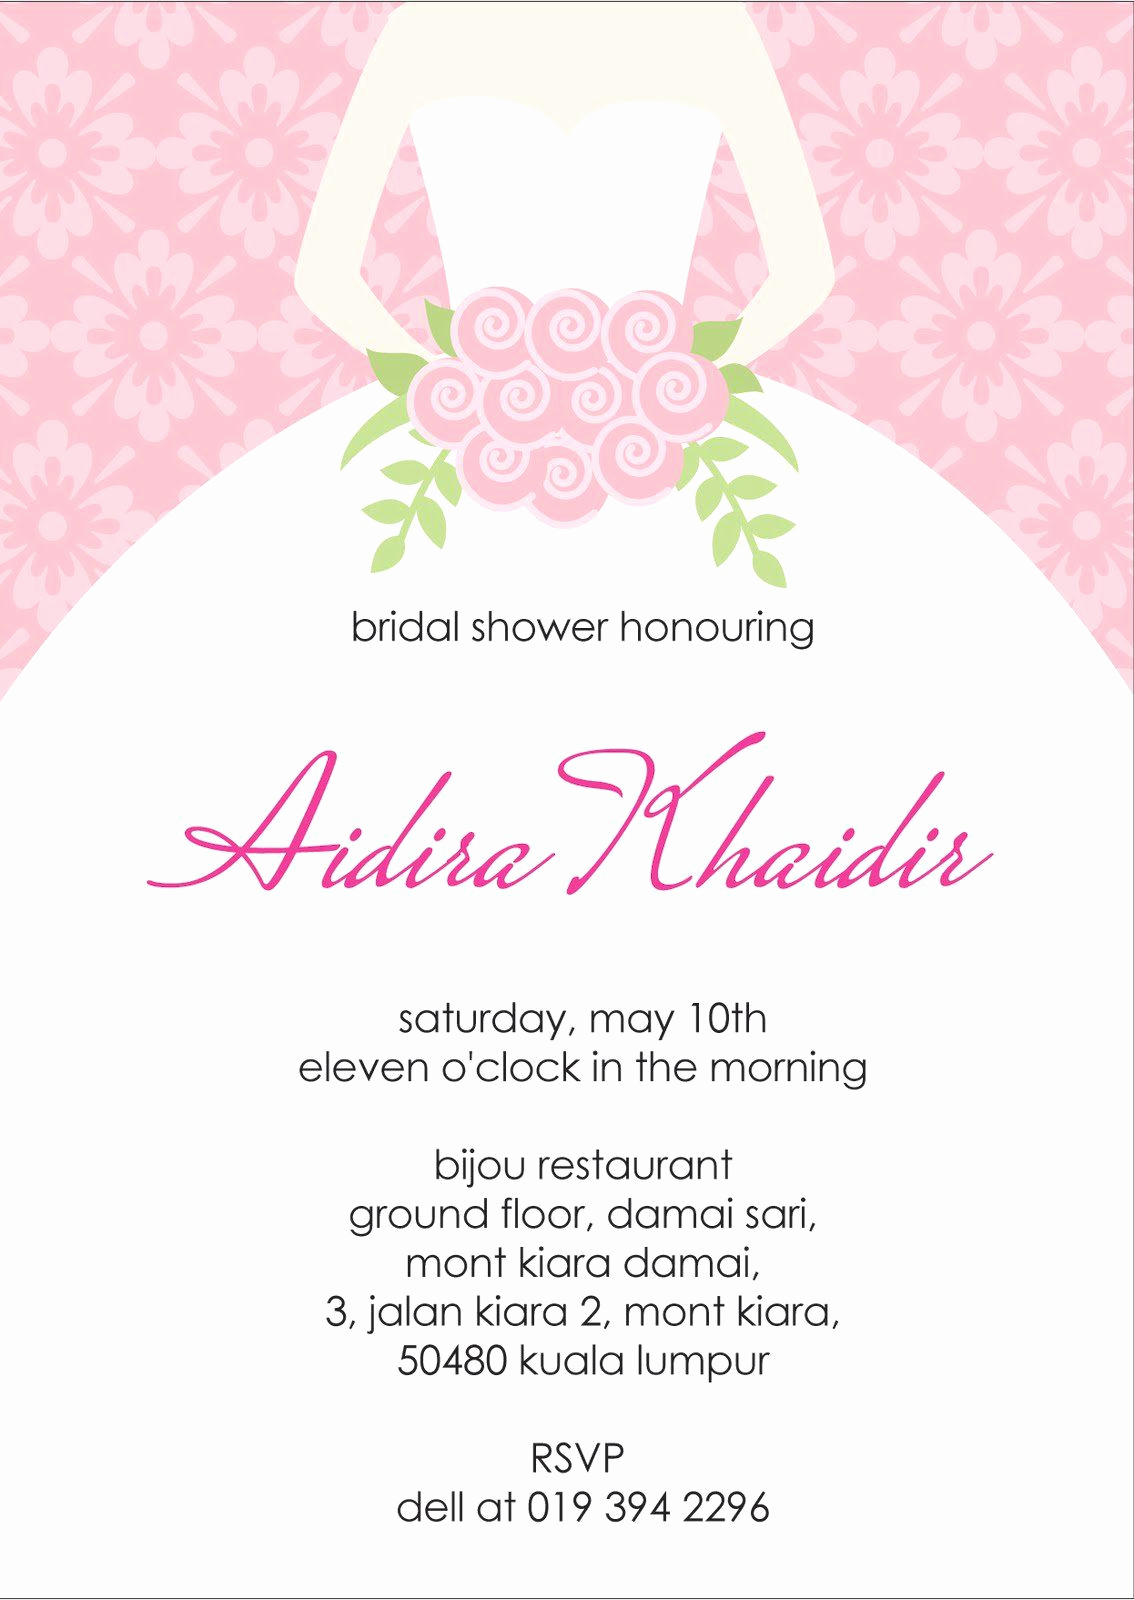 Bridal Shower Invitation Templates Fresh Bridal Shower Invitation Wording asking for Money